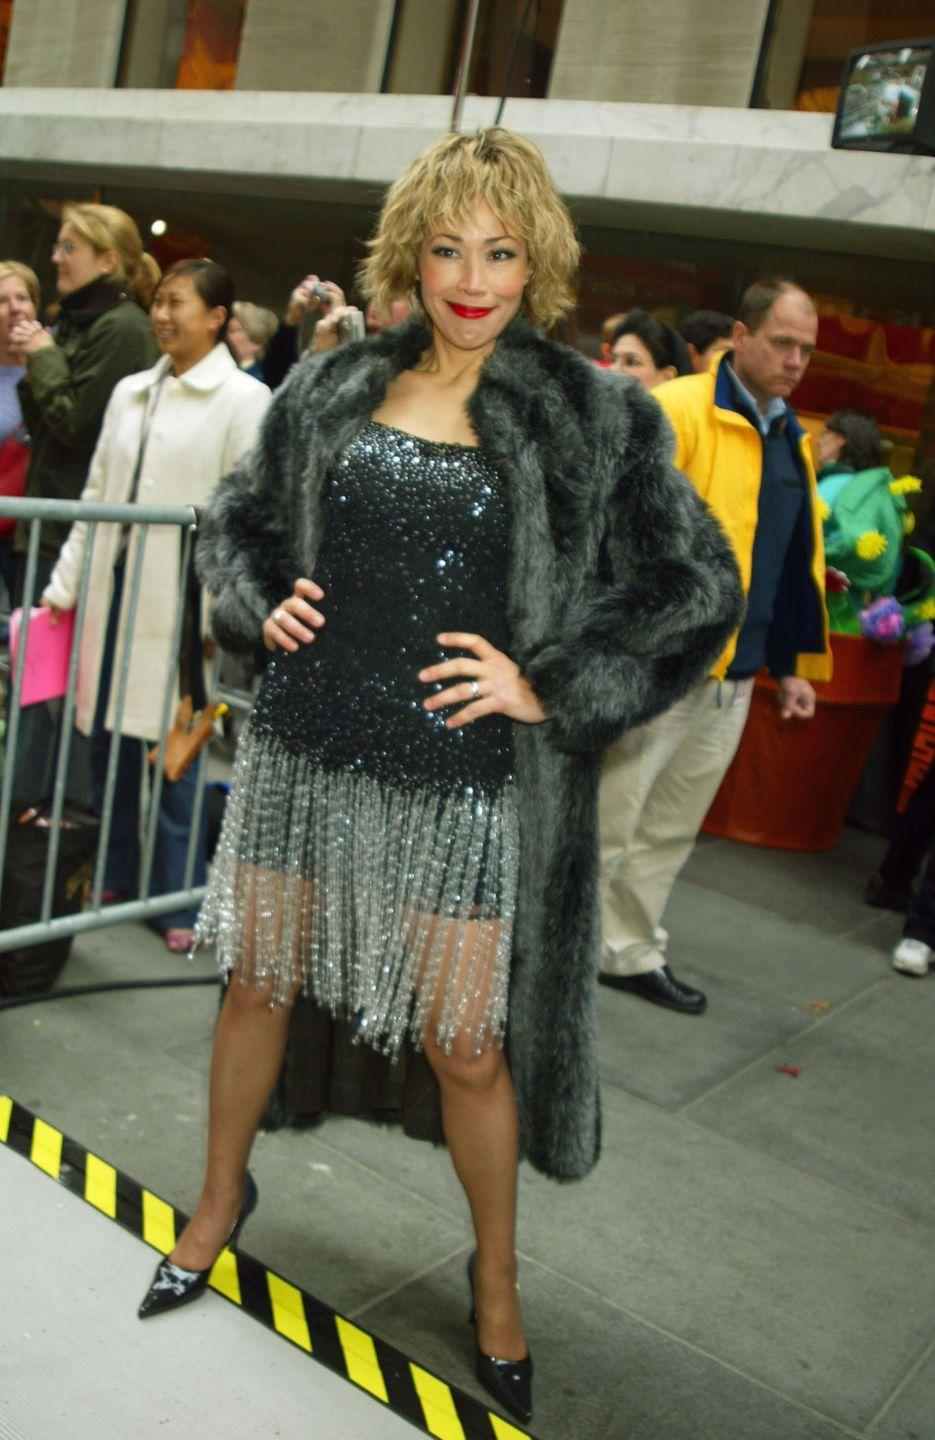 "<p>Well before Sheinelle created her Tina Turner look in 2018, Ann wore her own costume to honor the ""Proud Mary"" singer. Much like Sheinelle's costume, Ann's Tina Turner getup included <em><u>plenty</u></em> of glitz and bling. </p>"